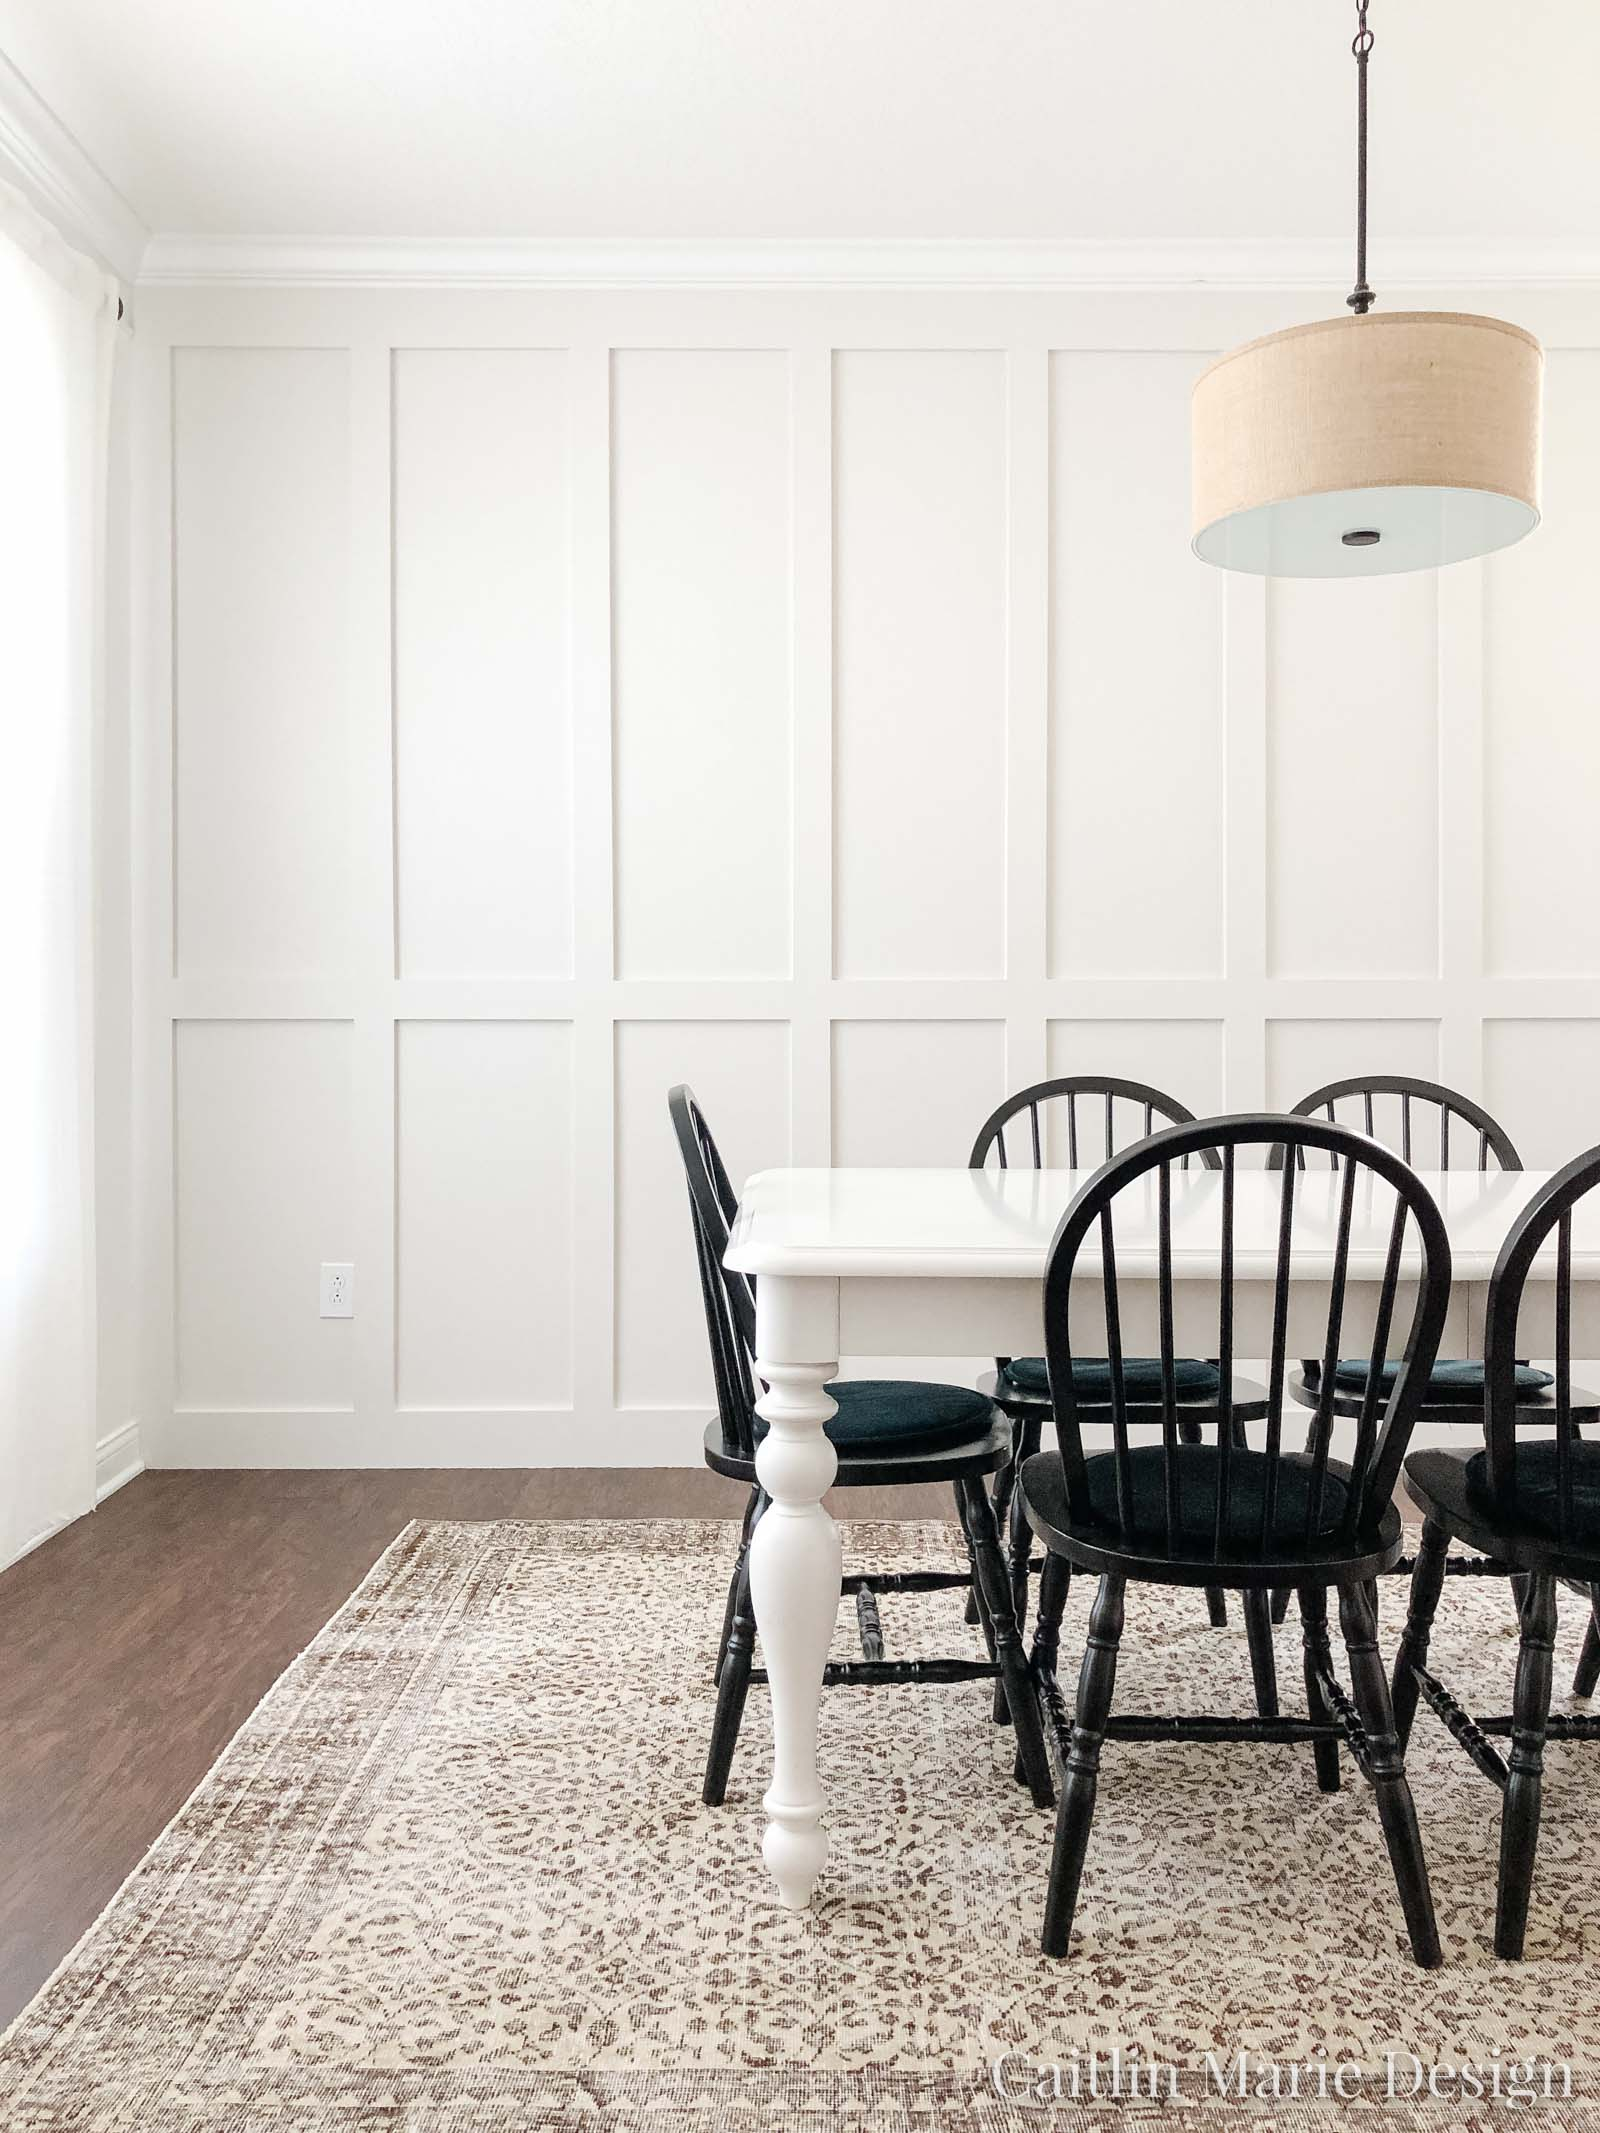 Dining space with beefy floor to ceiling board and batten accent wall